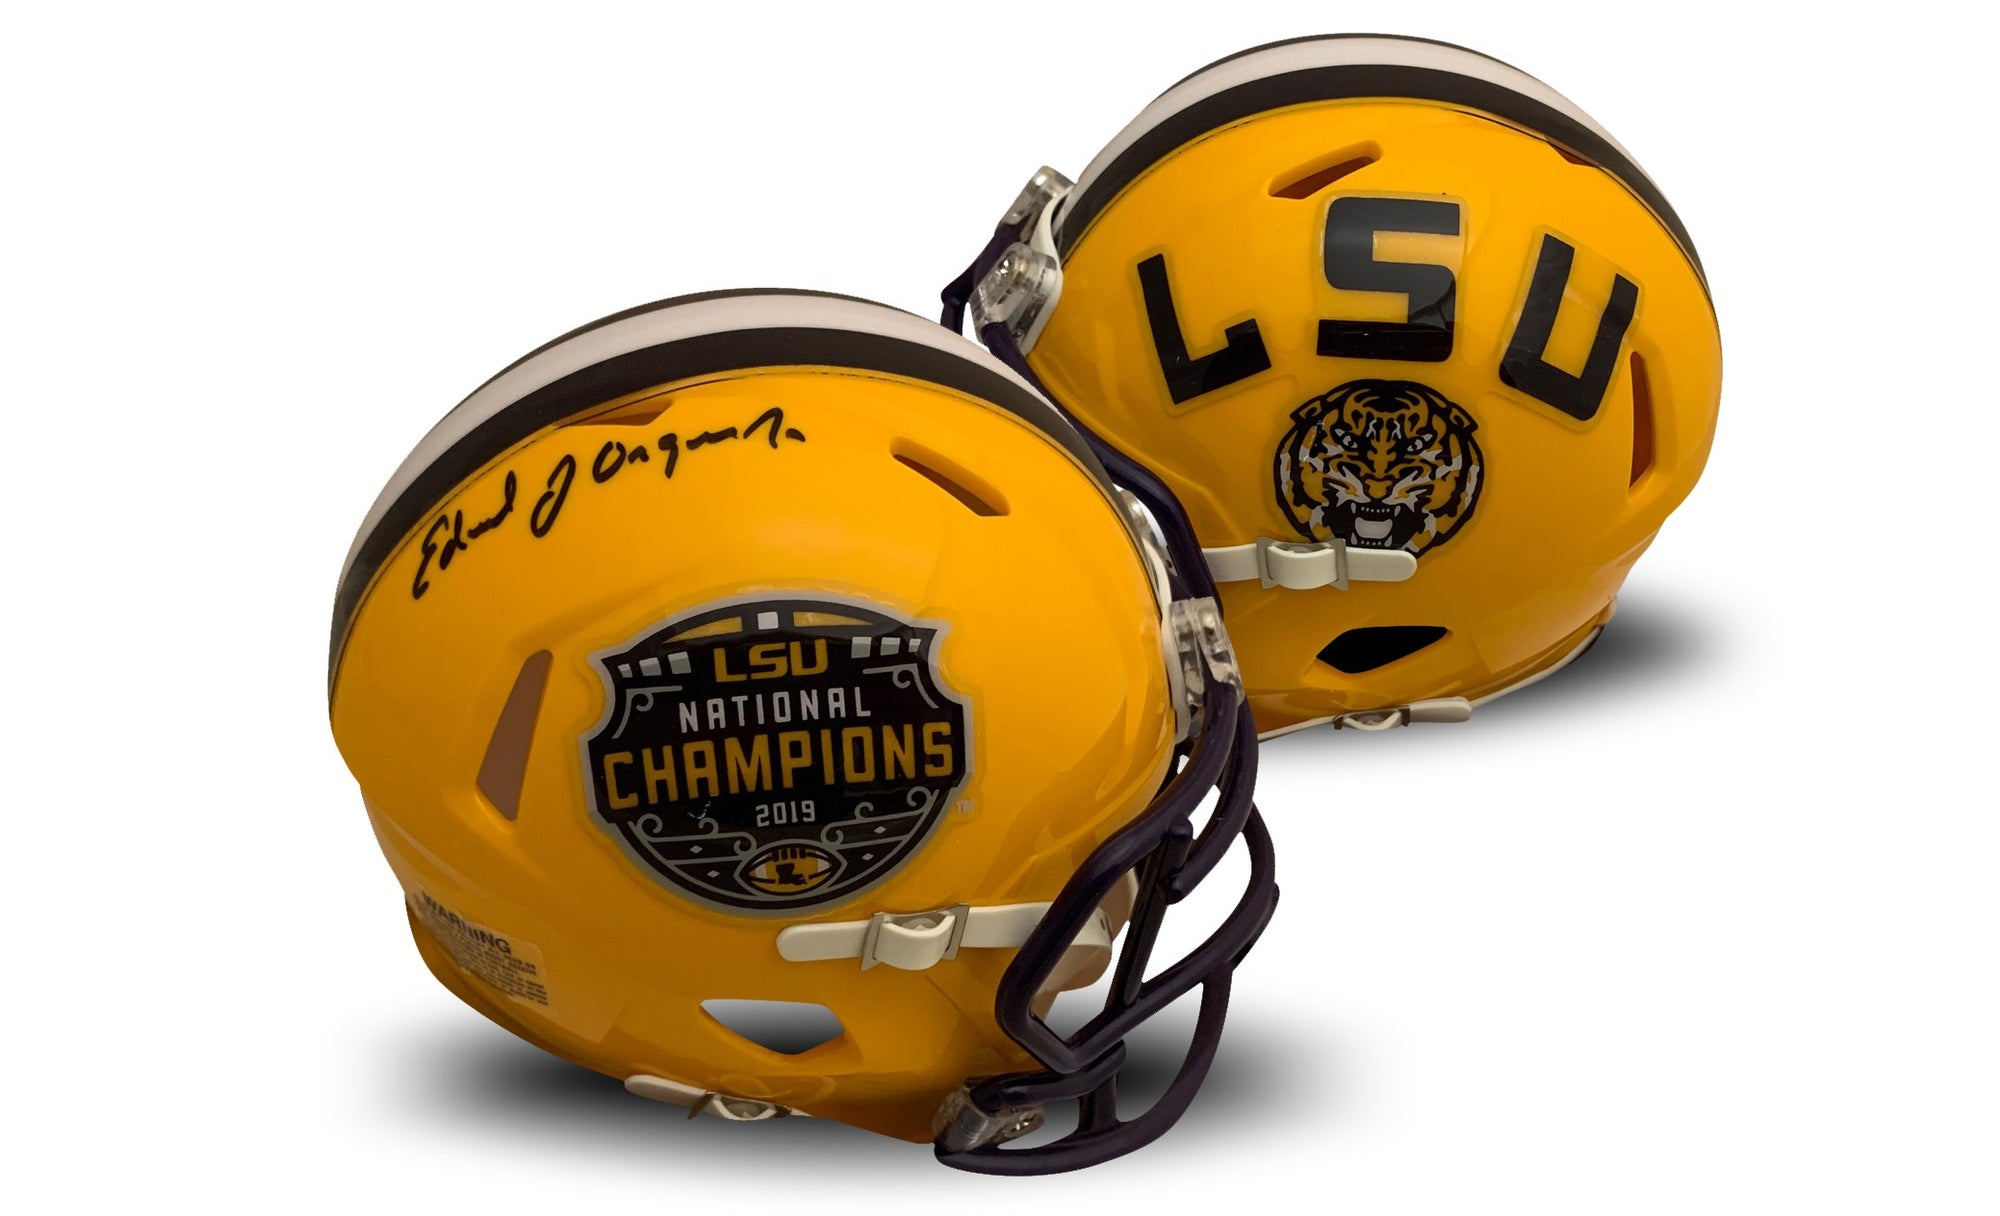 Ed Orgeron Autographed LSU Tigers 2019 National Championship Signed Football Mini Helmet Fanatics Authentic COA-Powers Sports Memorabilia